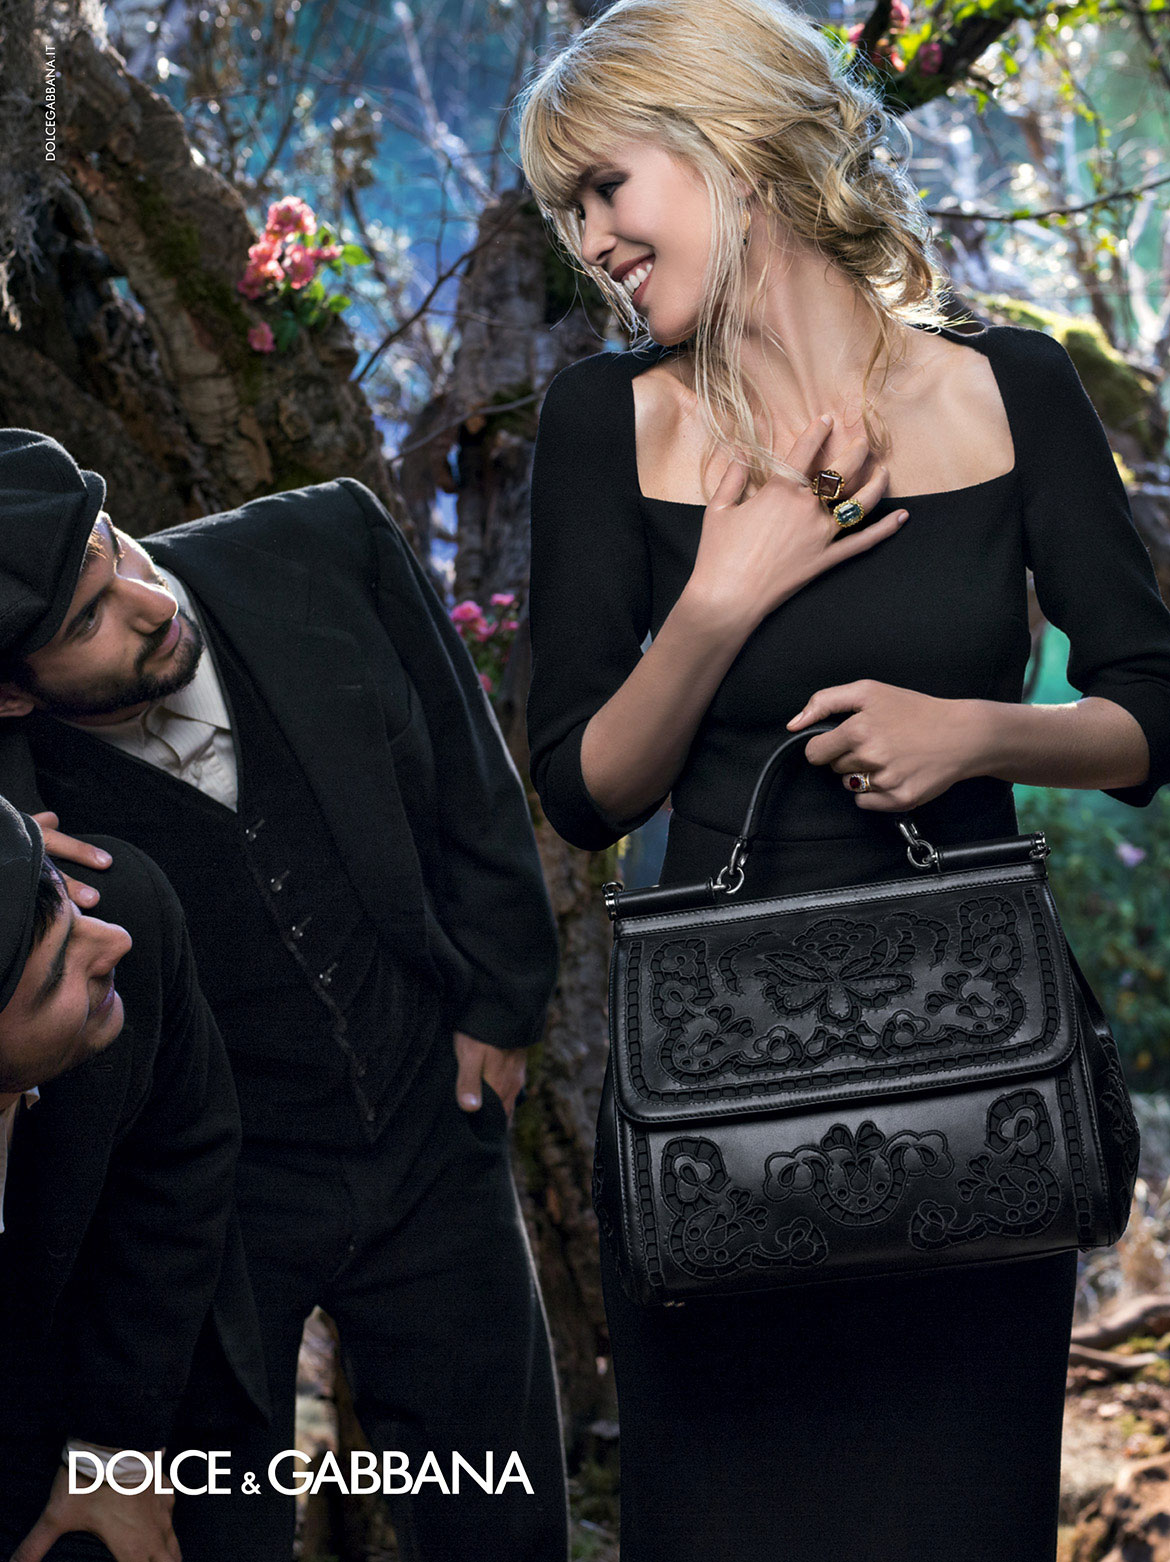 Dolce-Gabbana-Womenswear-Fall-2014-Campaign-Tom-Lorenzo-Site-TLO (1)